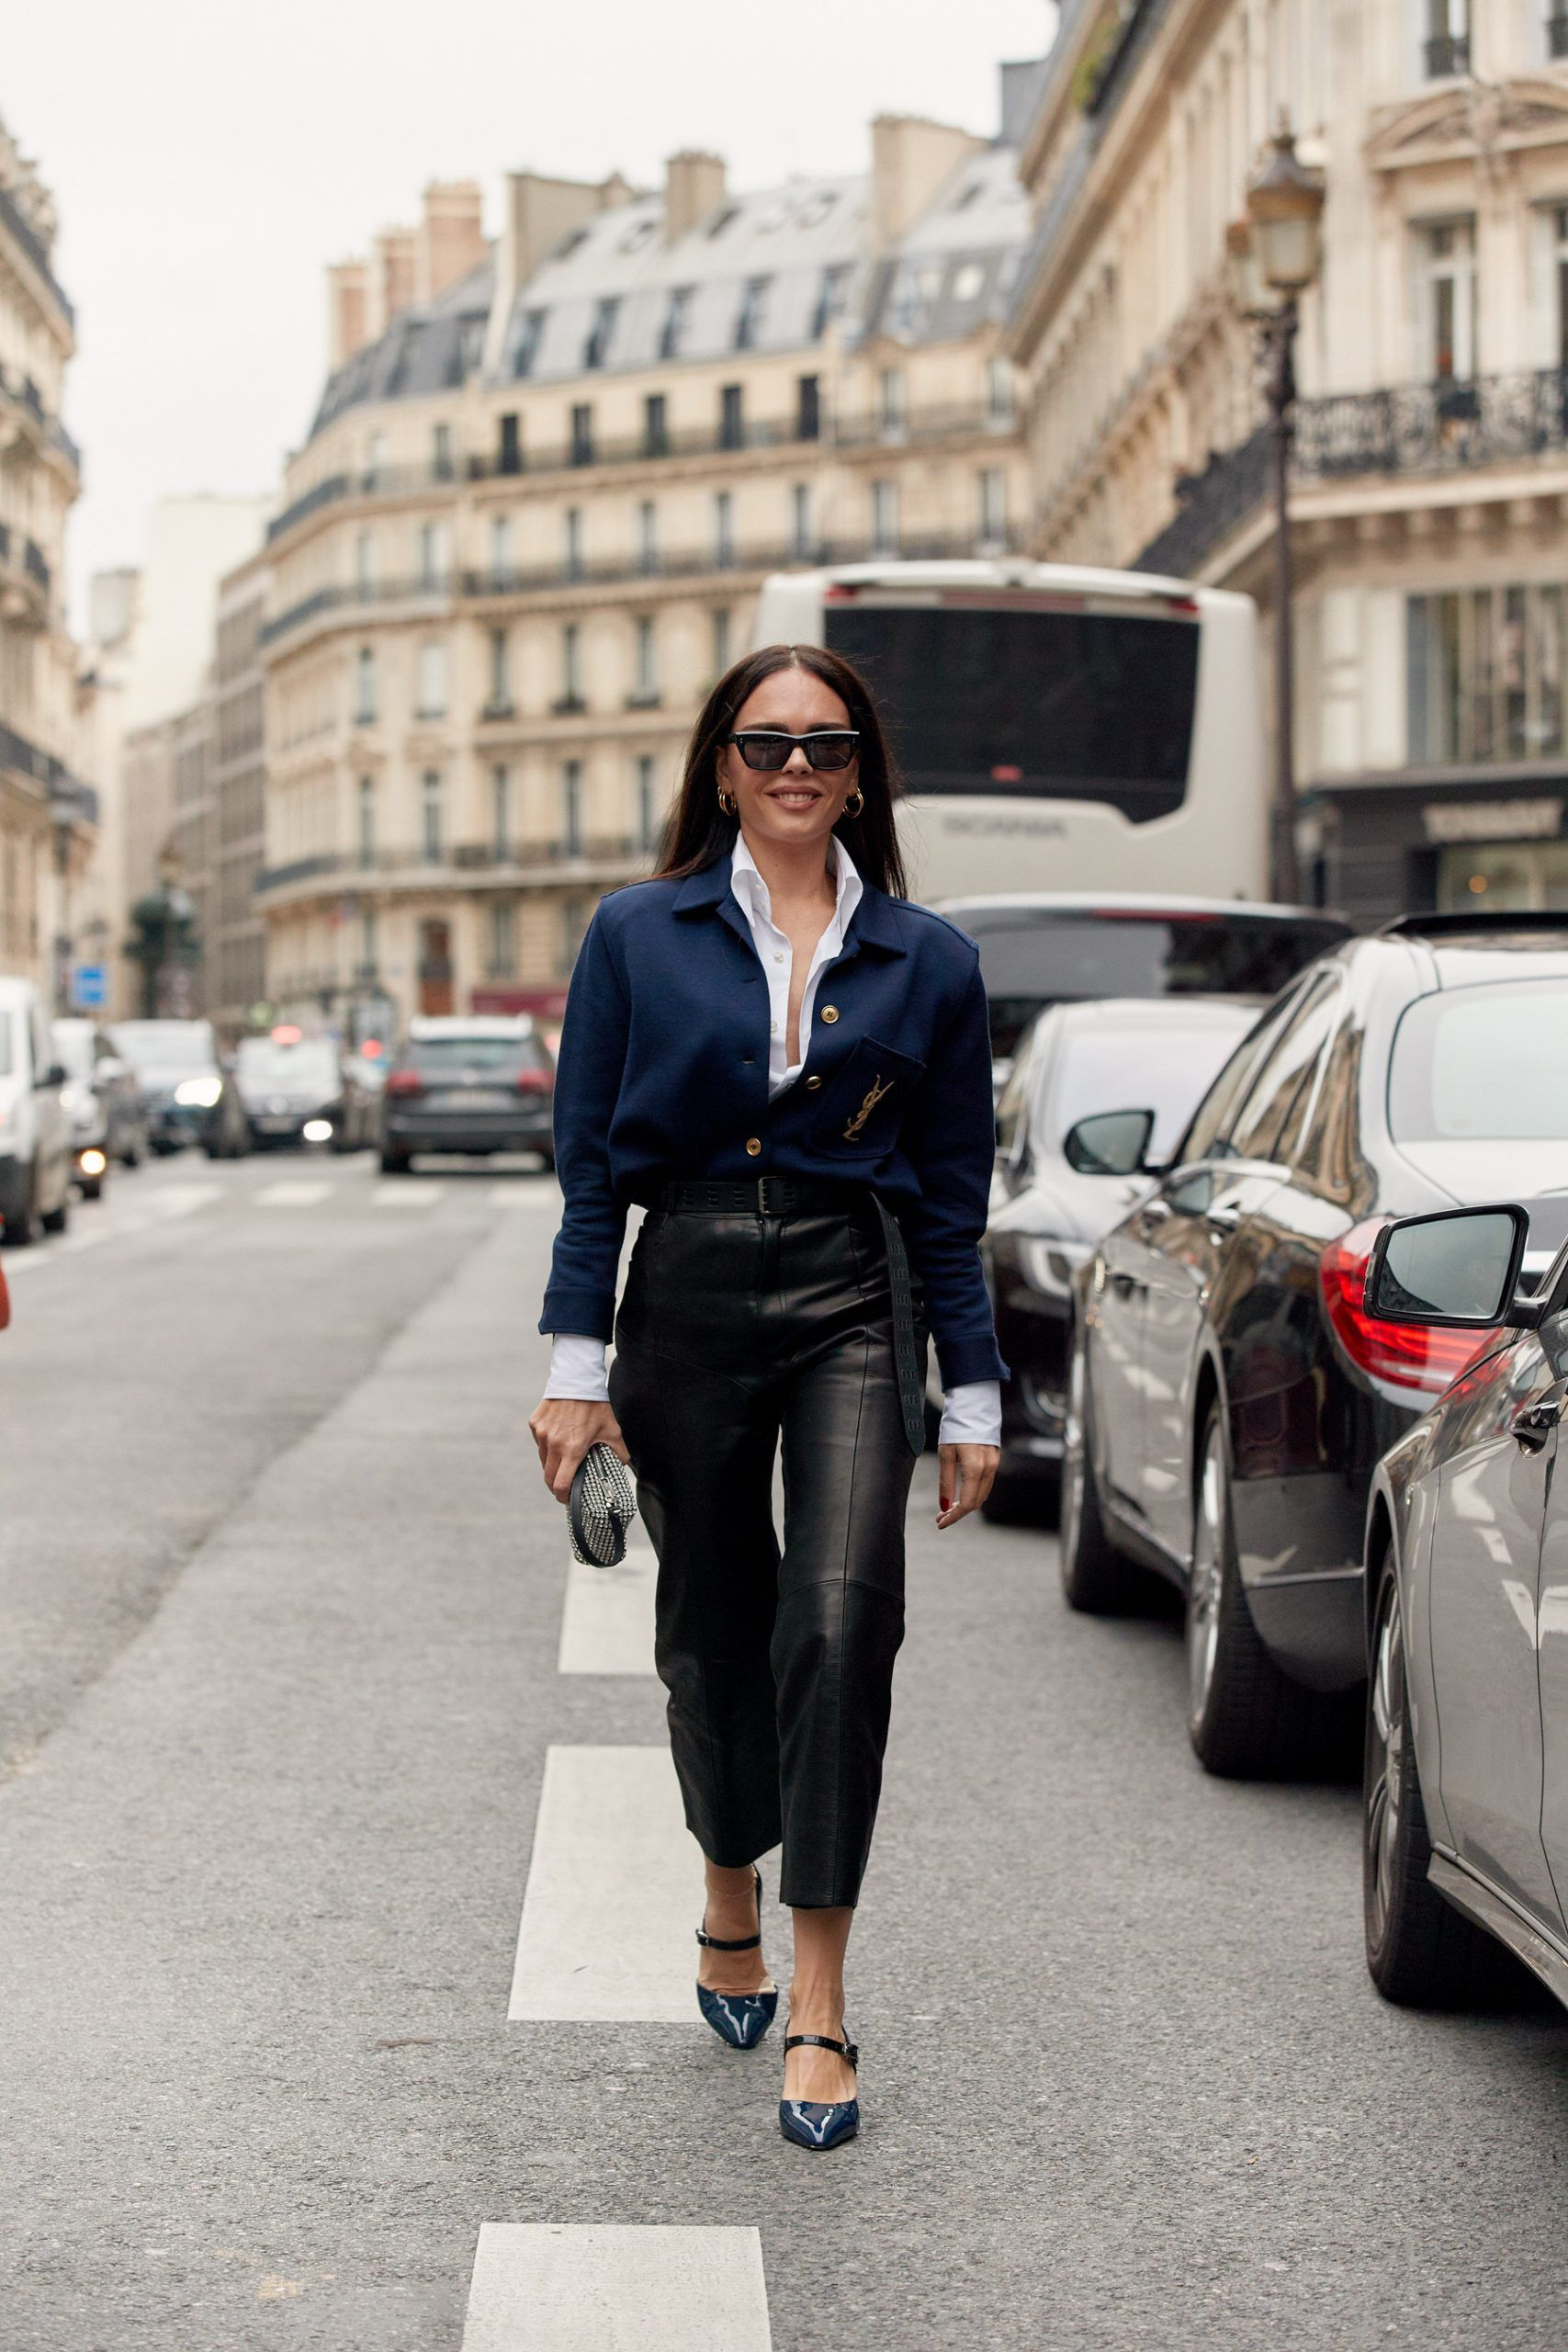 Paris Street Style Fall 2020 4 TER in 2020 (With images) | Autumn street  style, Cool street fashion, Nyc street style fall